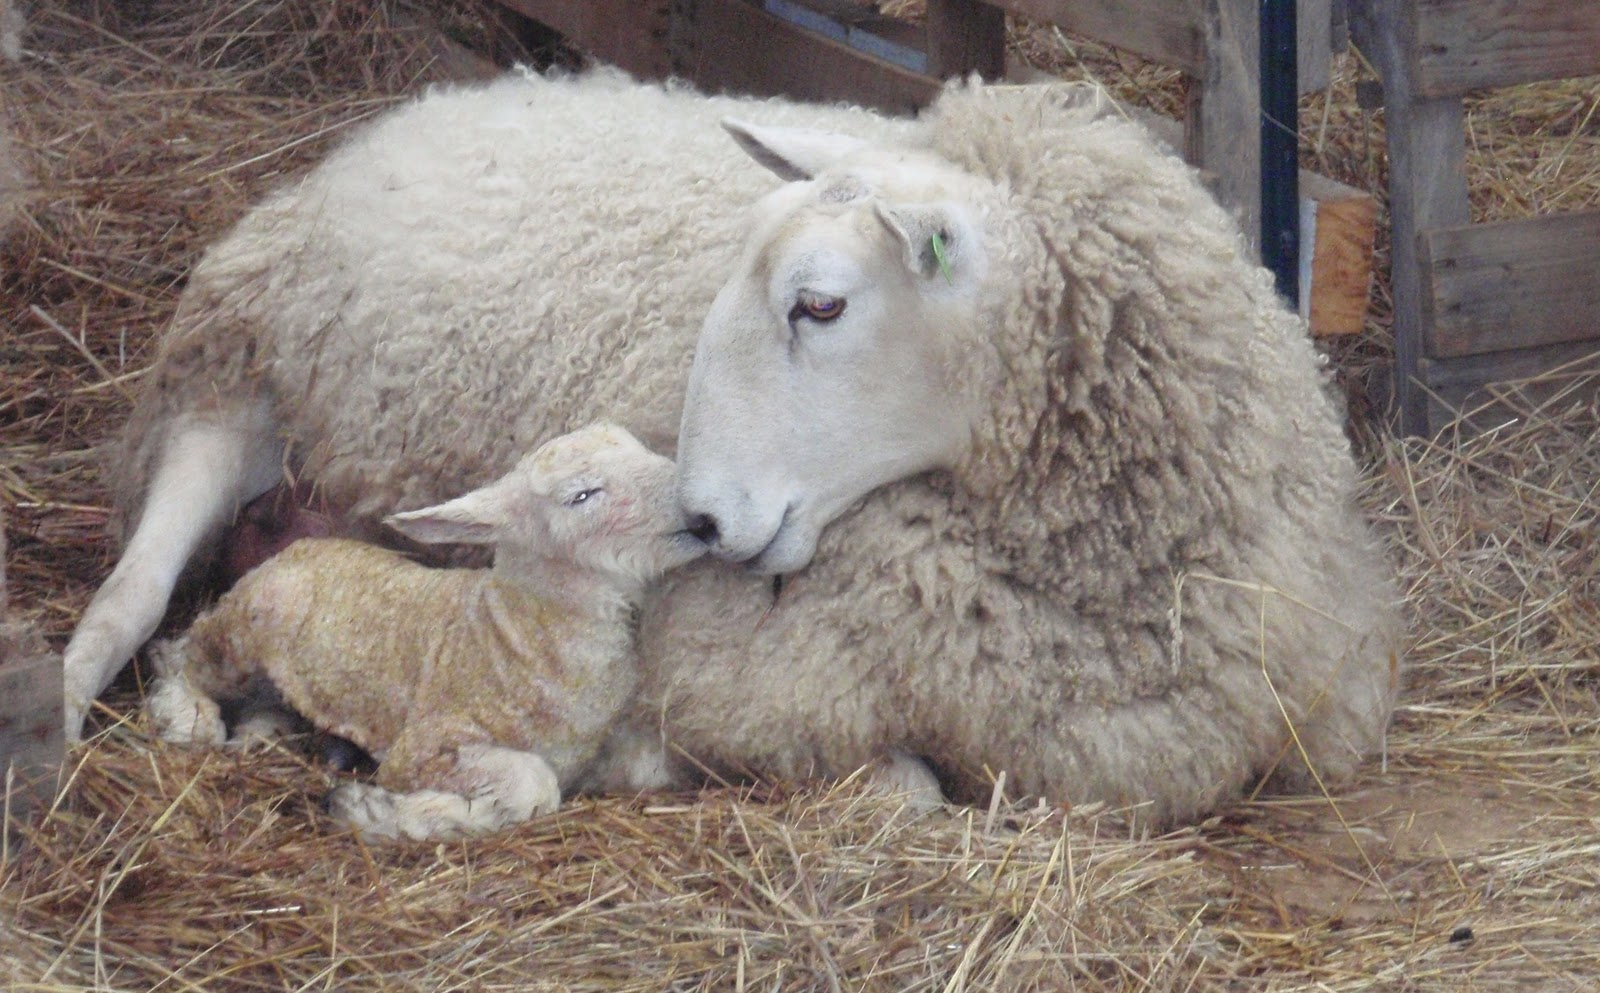 Sheep With Baby Lambs In Spring Stock Photo - Image of ... |Baby Lambs In Spring